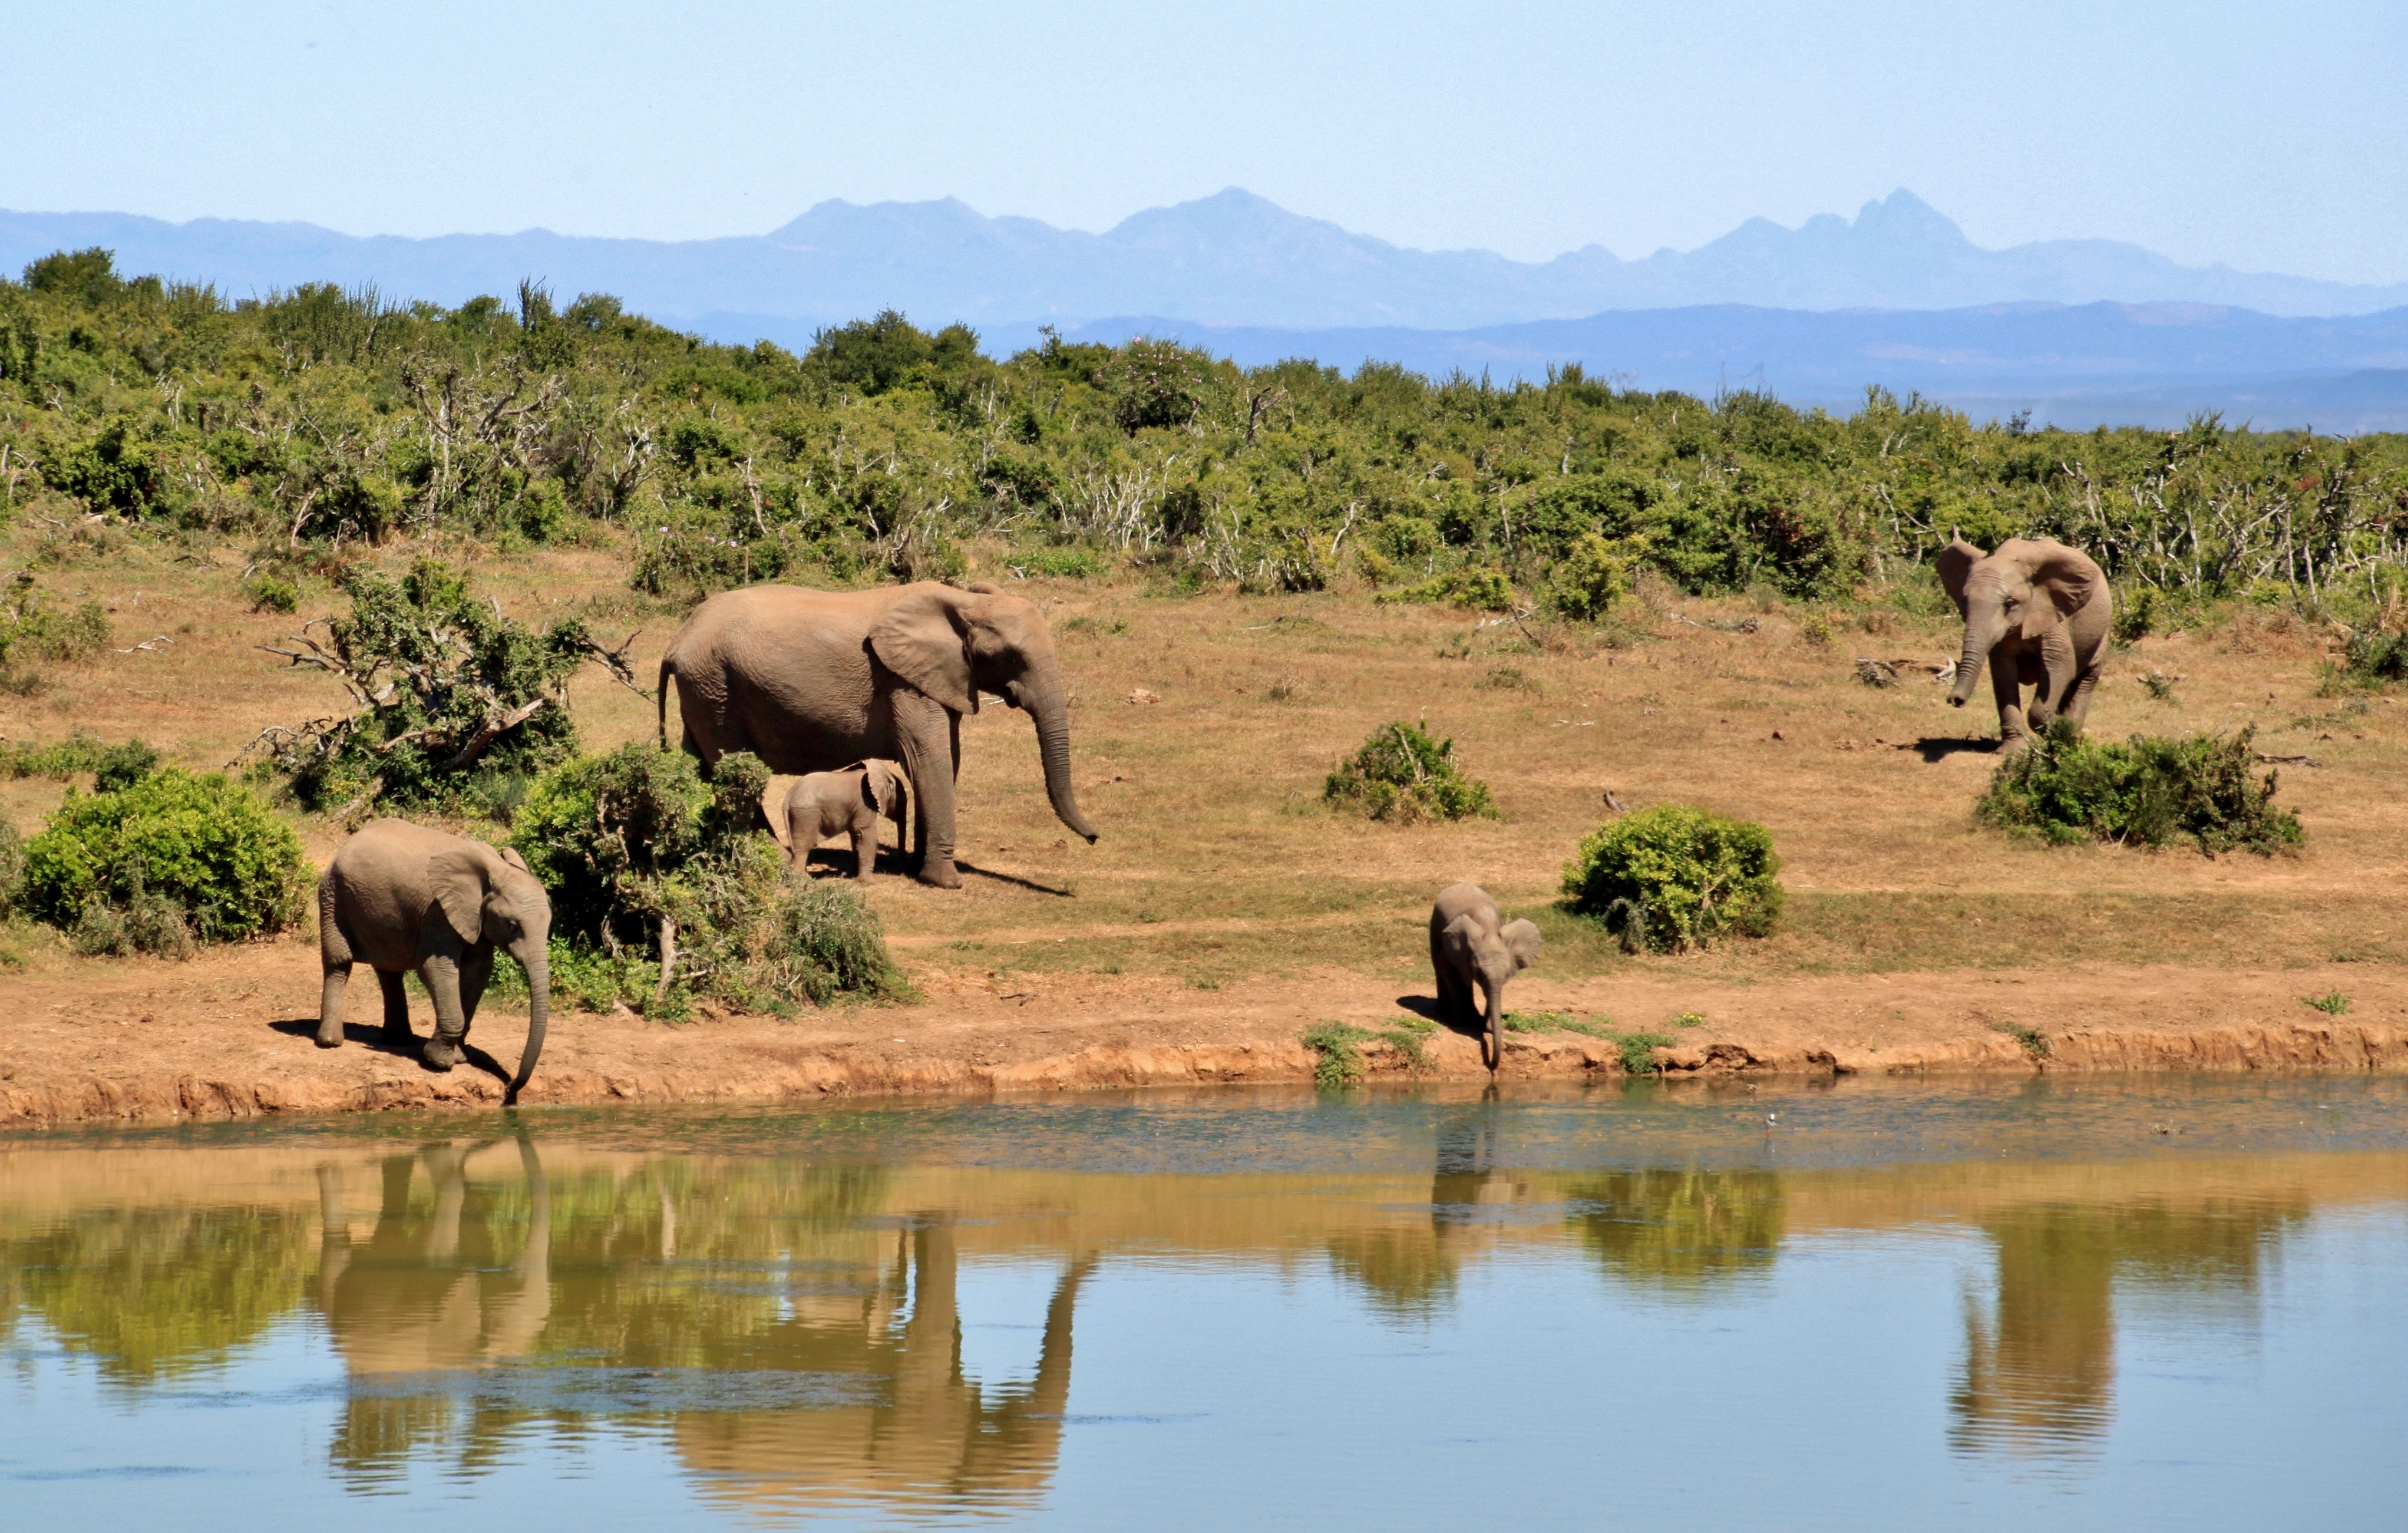 gray elephants near body of water during daytime free stock photo